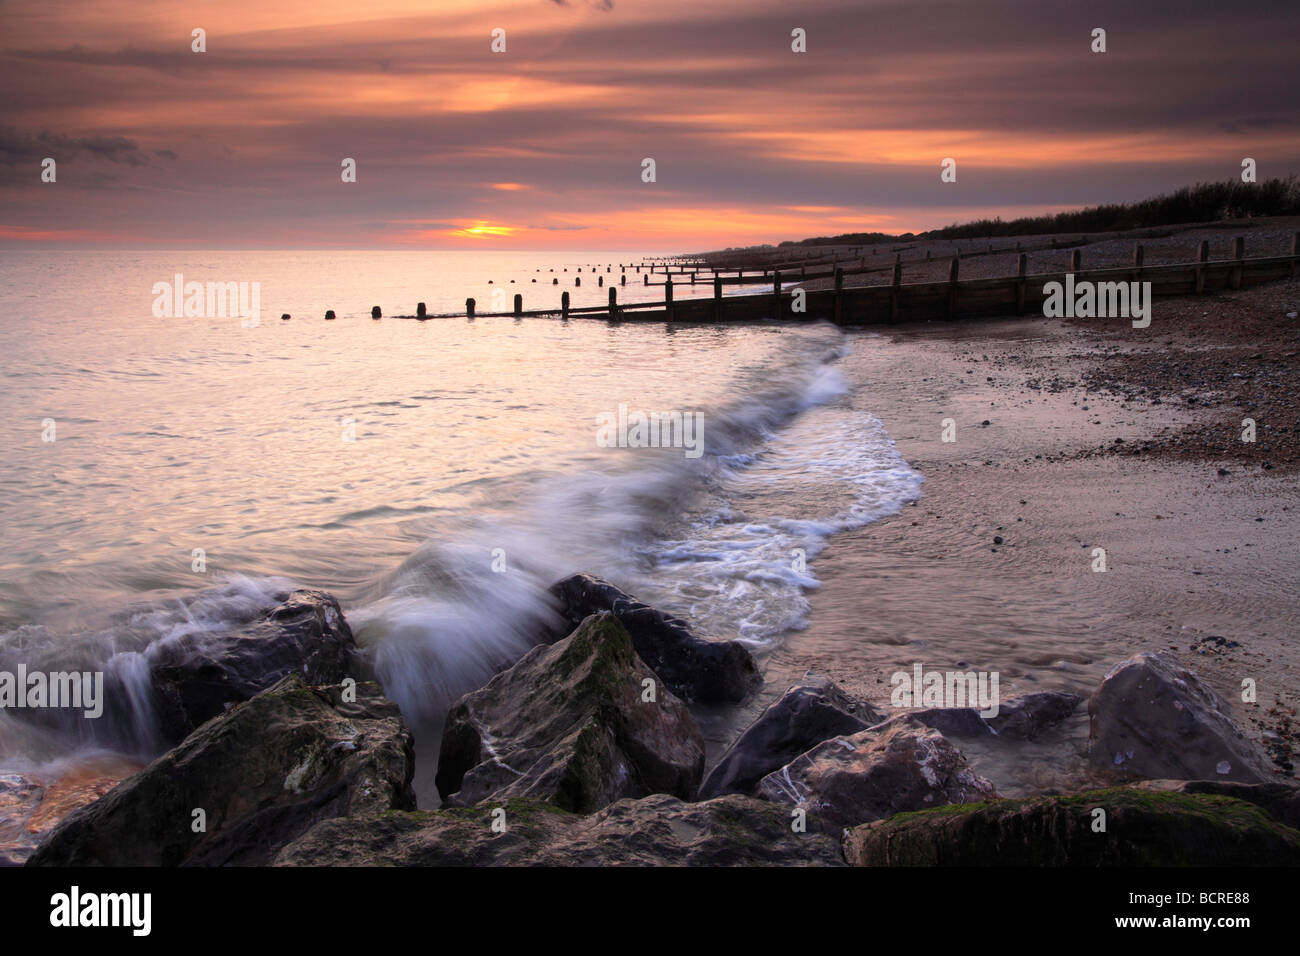 Sunset on Goring beach, Goring, Worthing, West Sussex - Stock Image